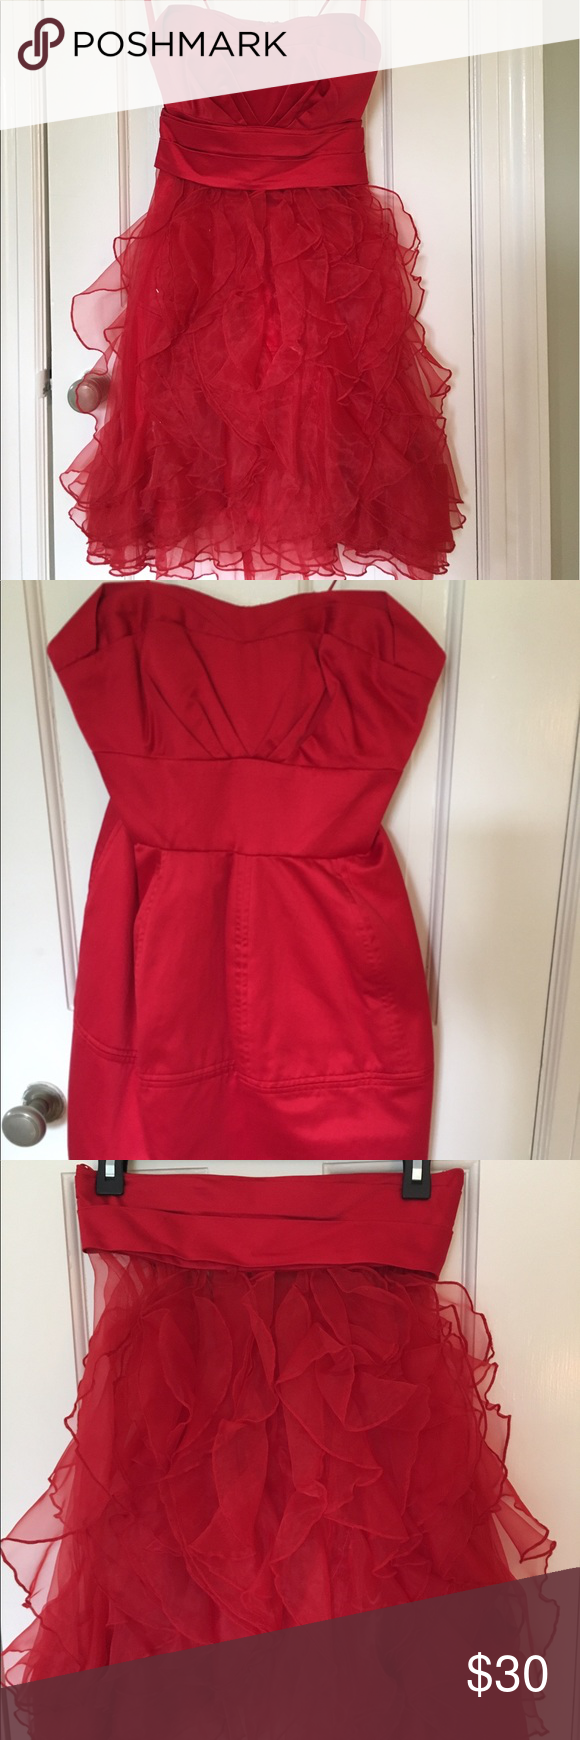 Collectors strapless red dress w removable skirt strapless red